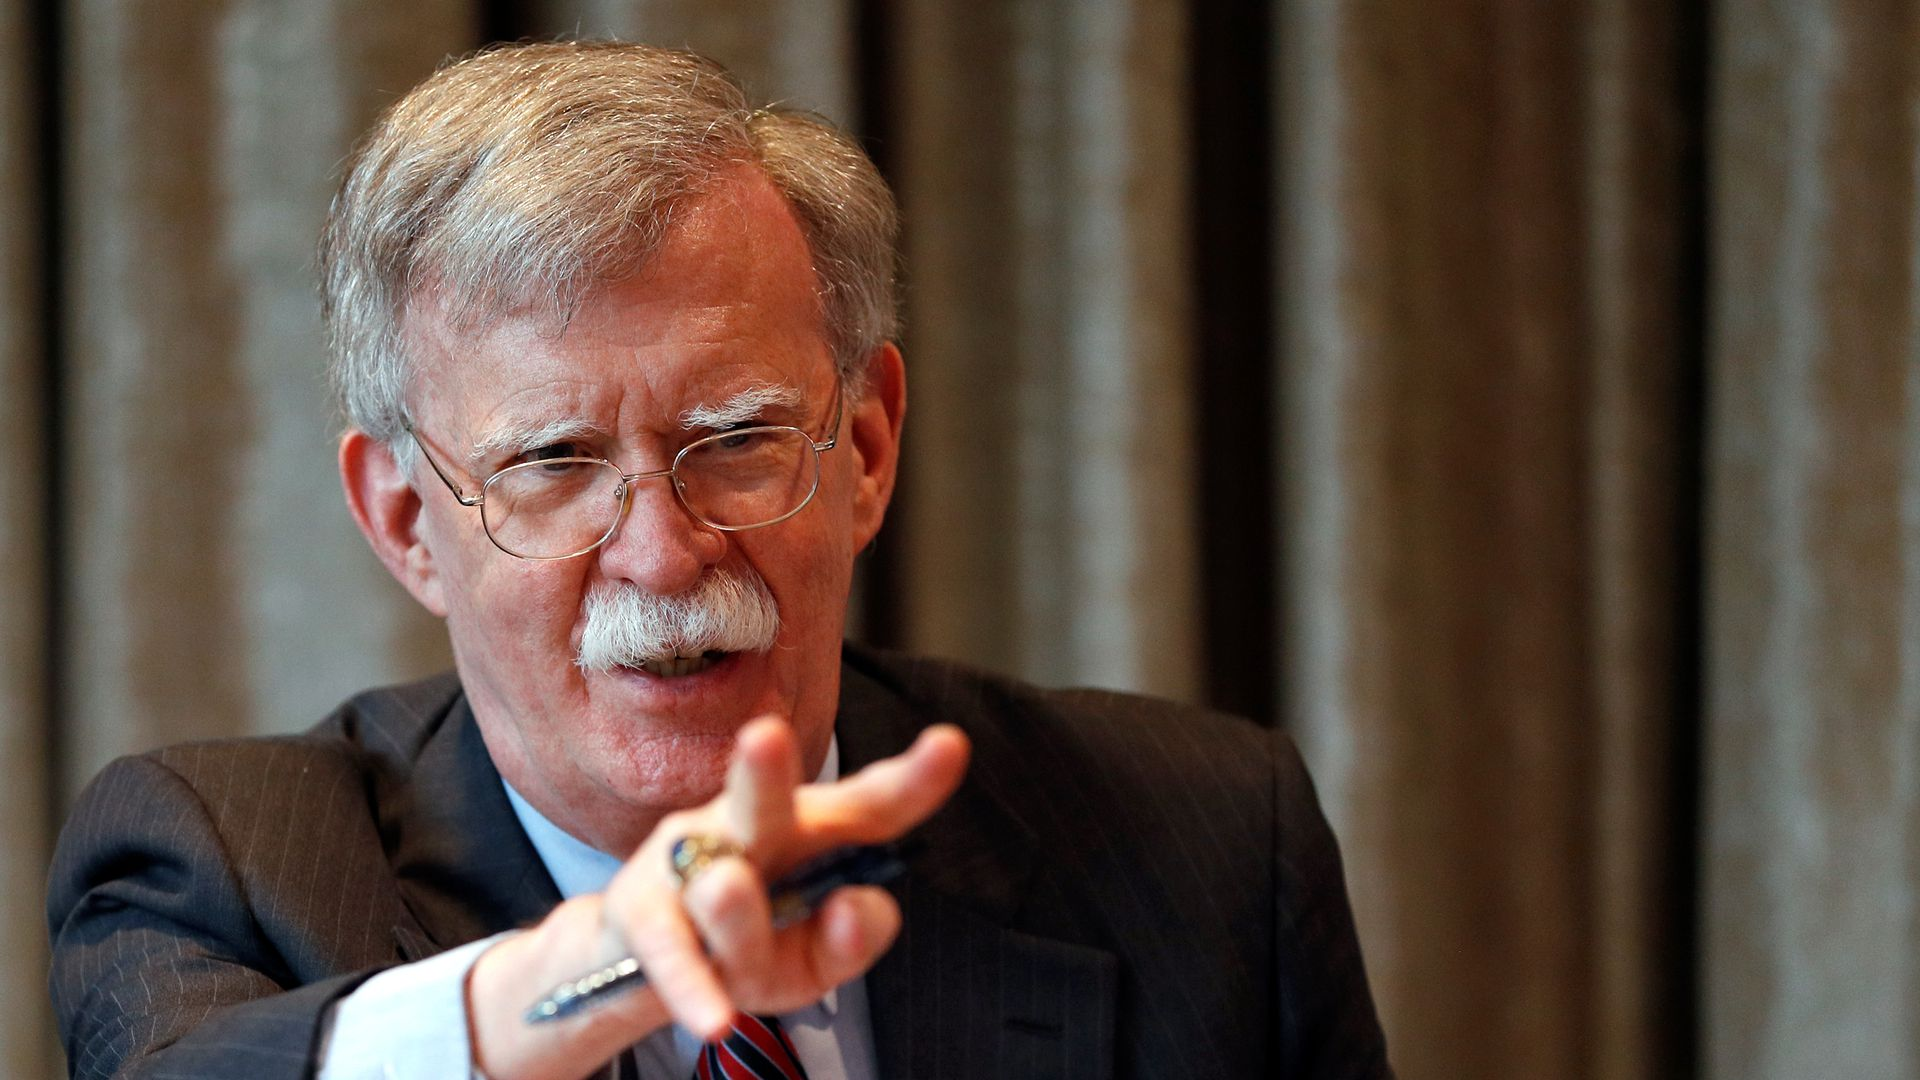 U.S. National Security Advisor, John Bolton, gestures as he meets with journalists during a visit to London